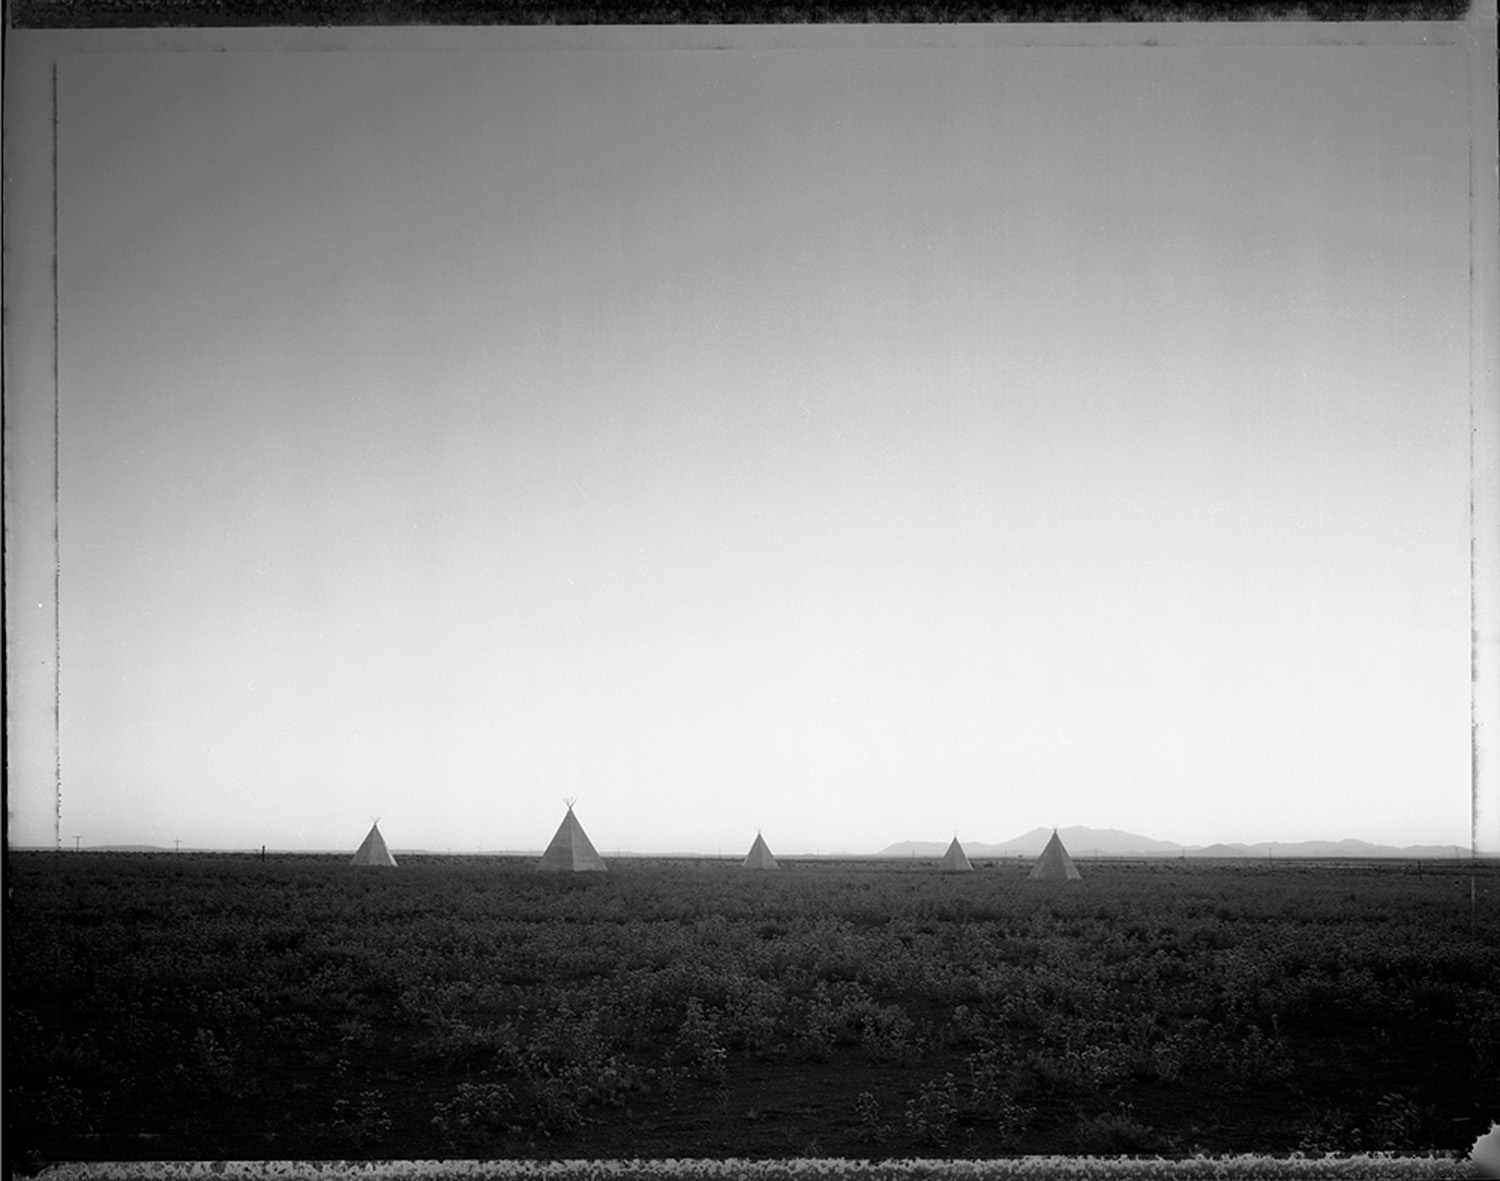 Plywood Tee-Pees, Meteor Crater, AZ, 1982